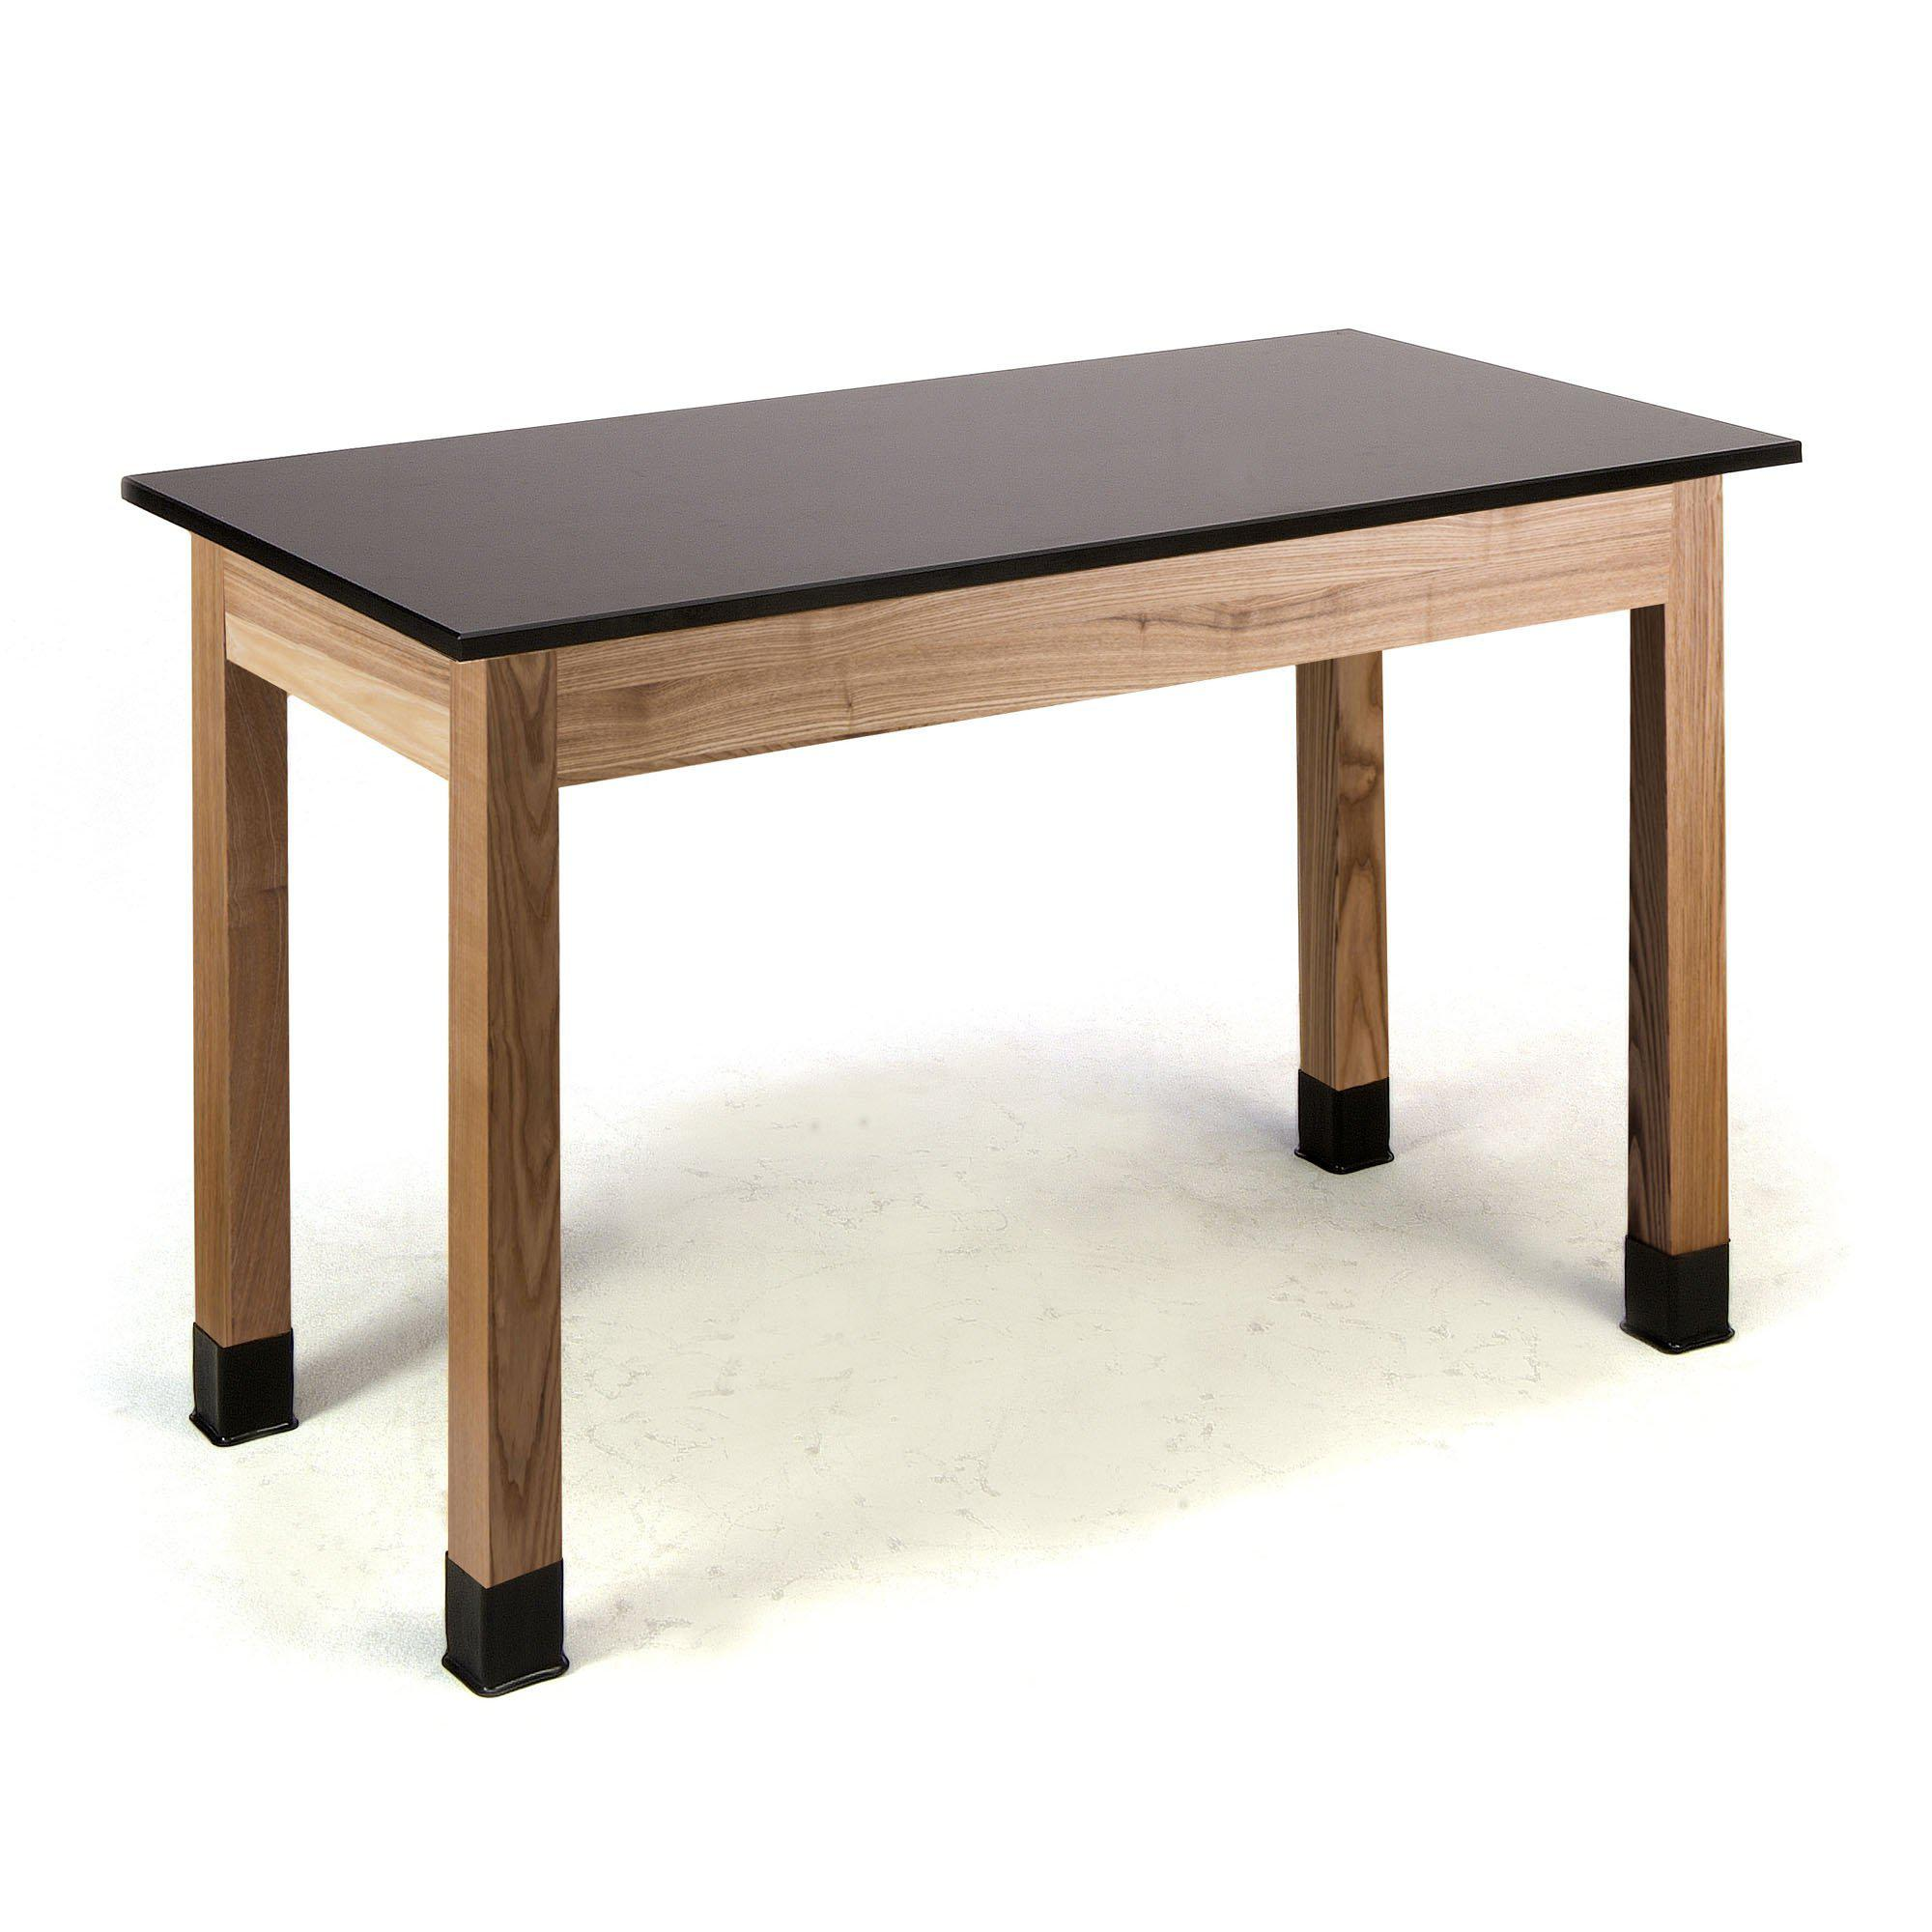 NPS Superior Science Lab Tables with Phenolic Top, Solid Wood Legs